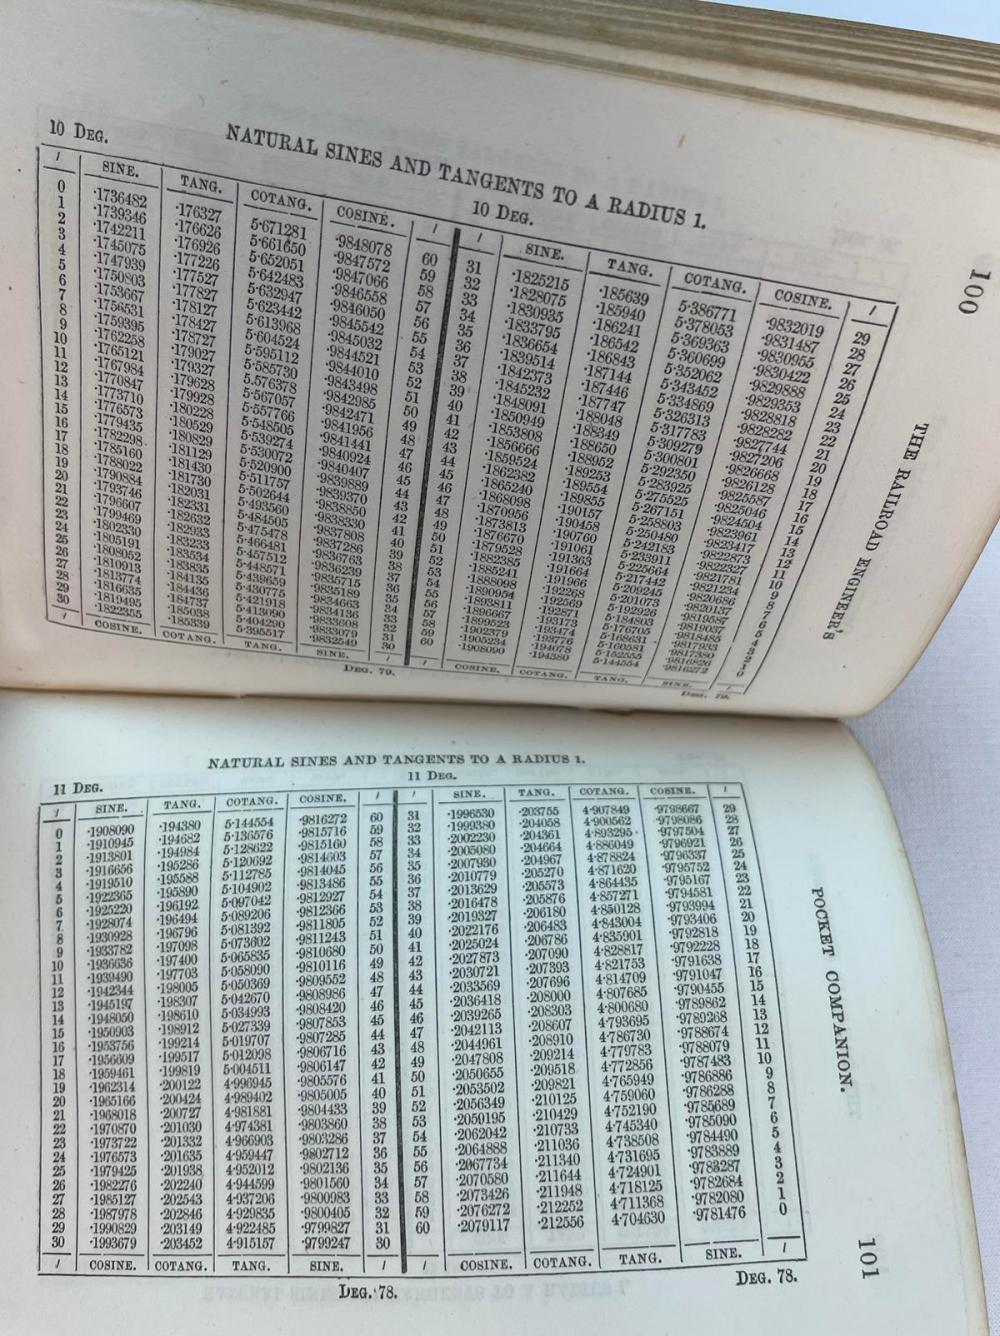 RARE 1855 Griswold's Railroad Engineers' Pocket Companion For The Field by W. Griswold FIRST EDITION Signed